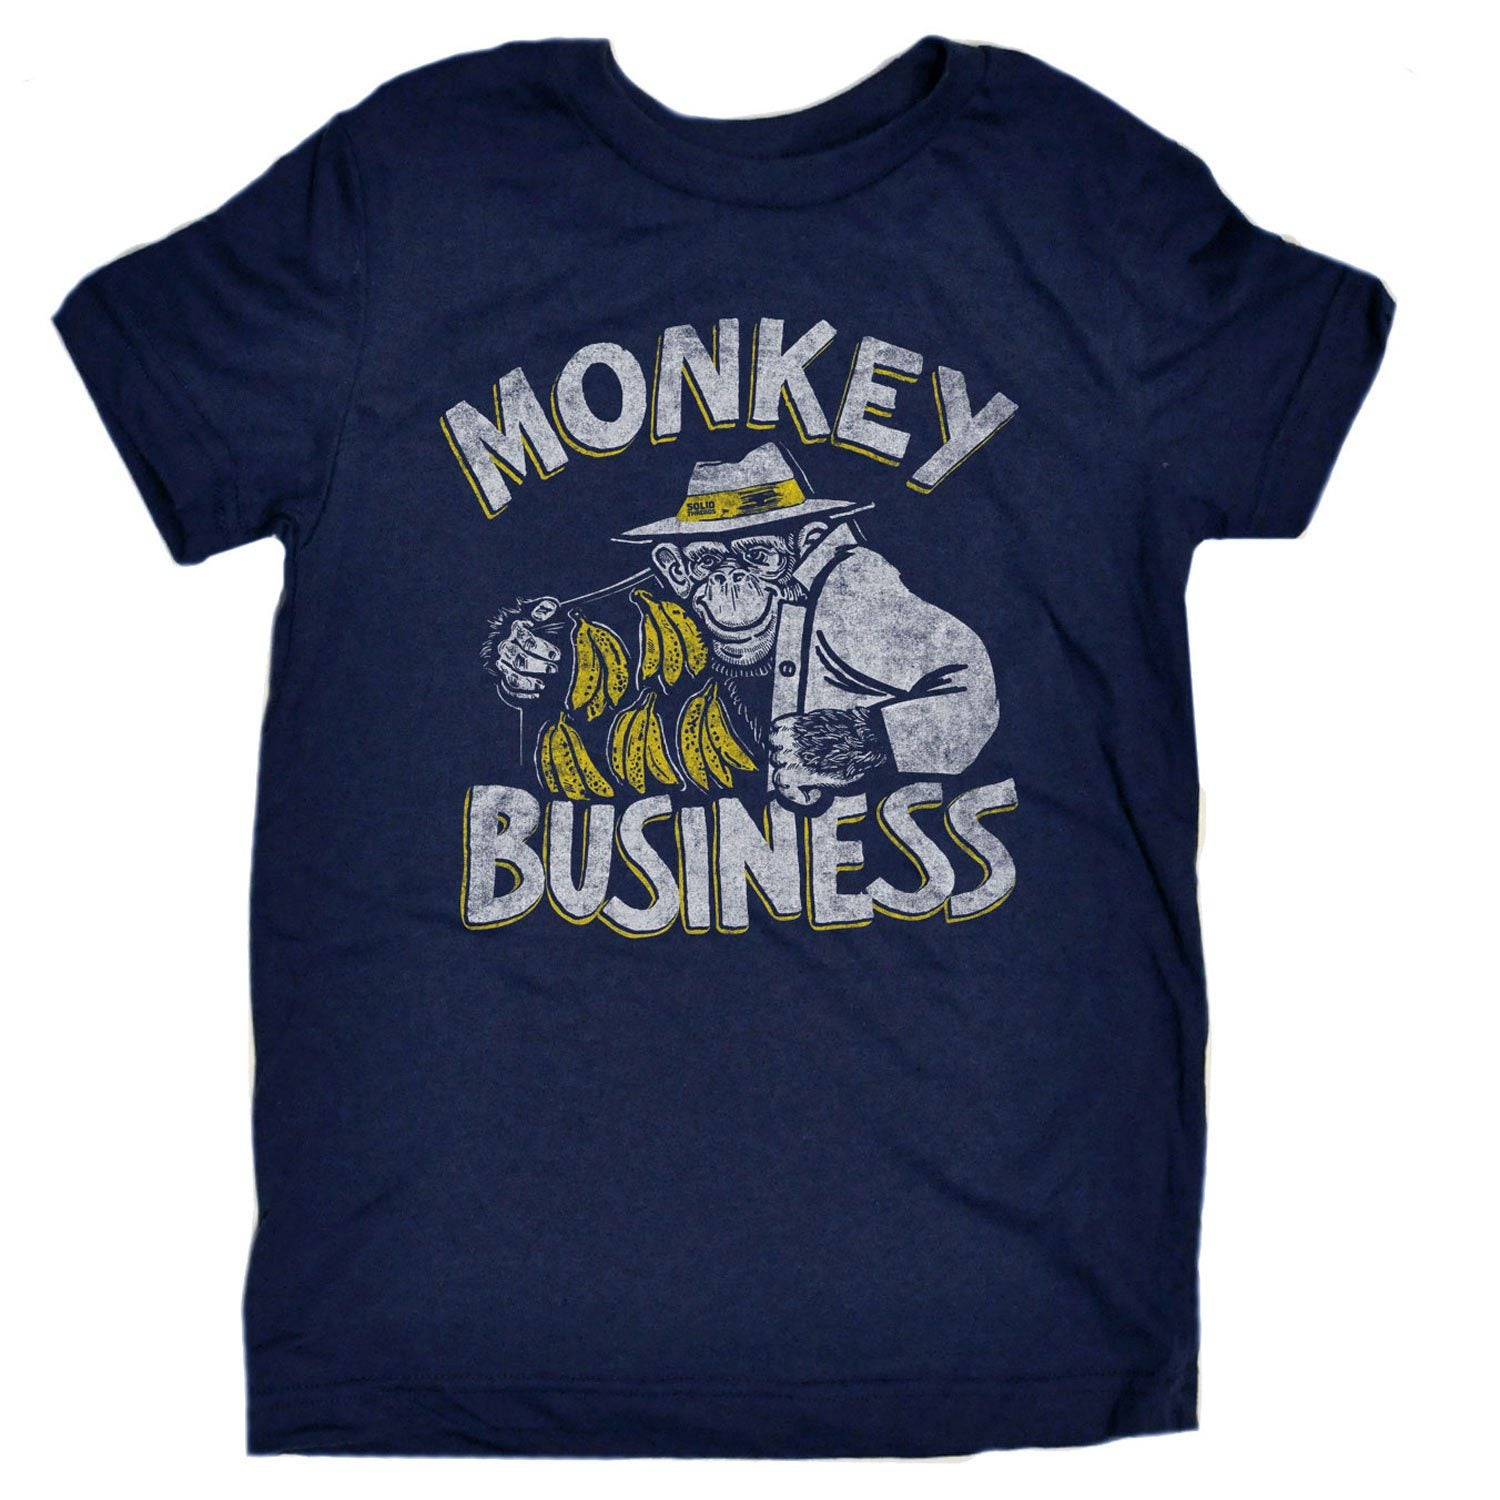 Toddler's Monkey Business Vintage Inspired T-shirt | Funny Animal Graphic Tee | Solid Threads